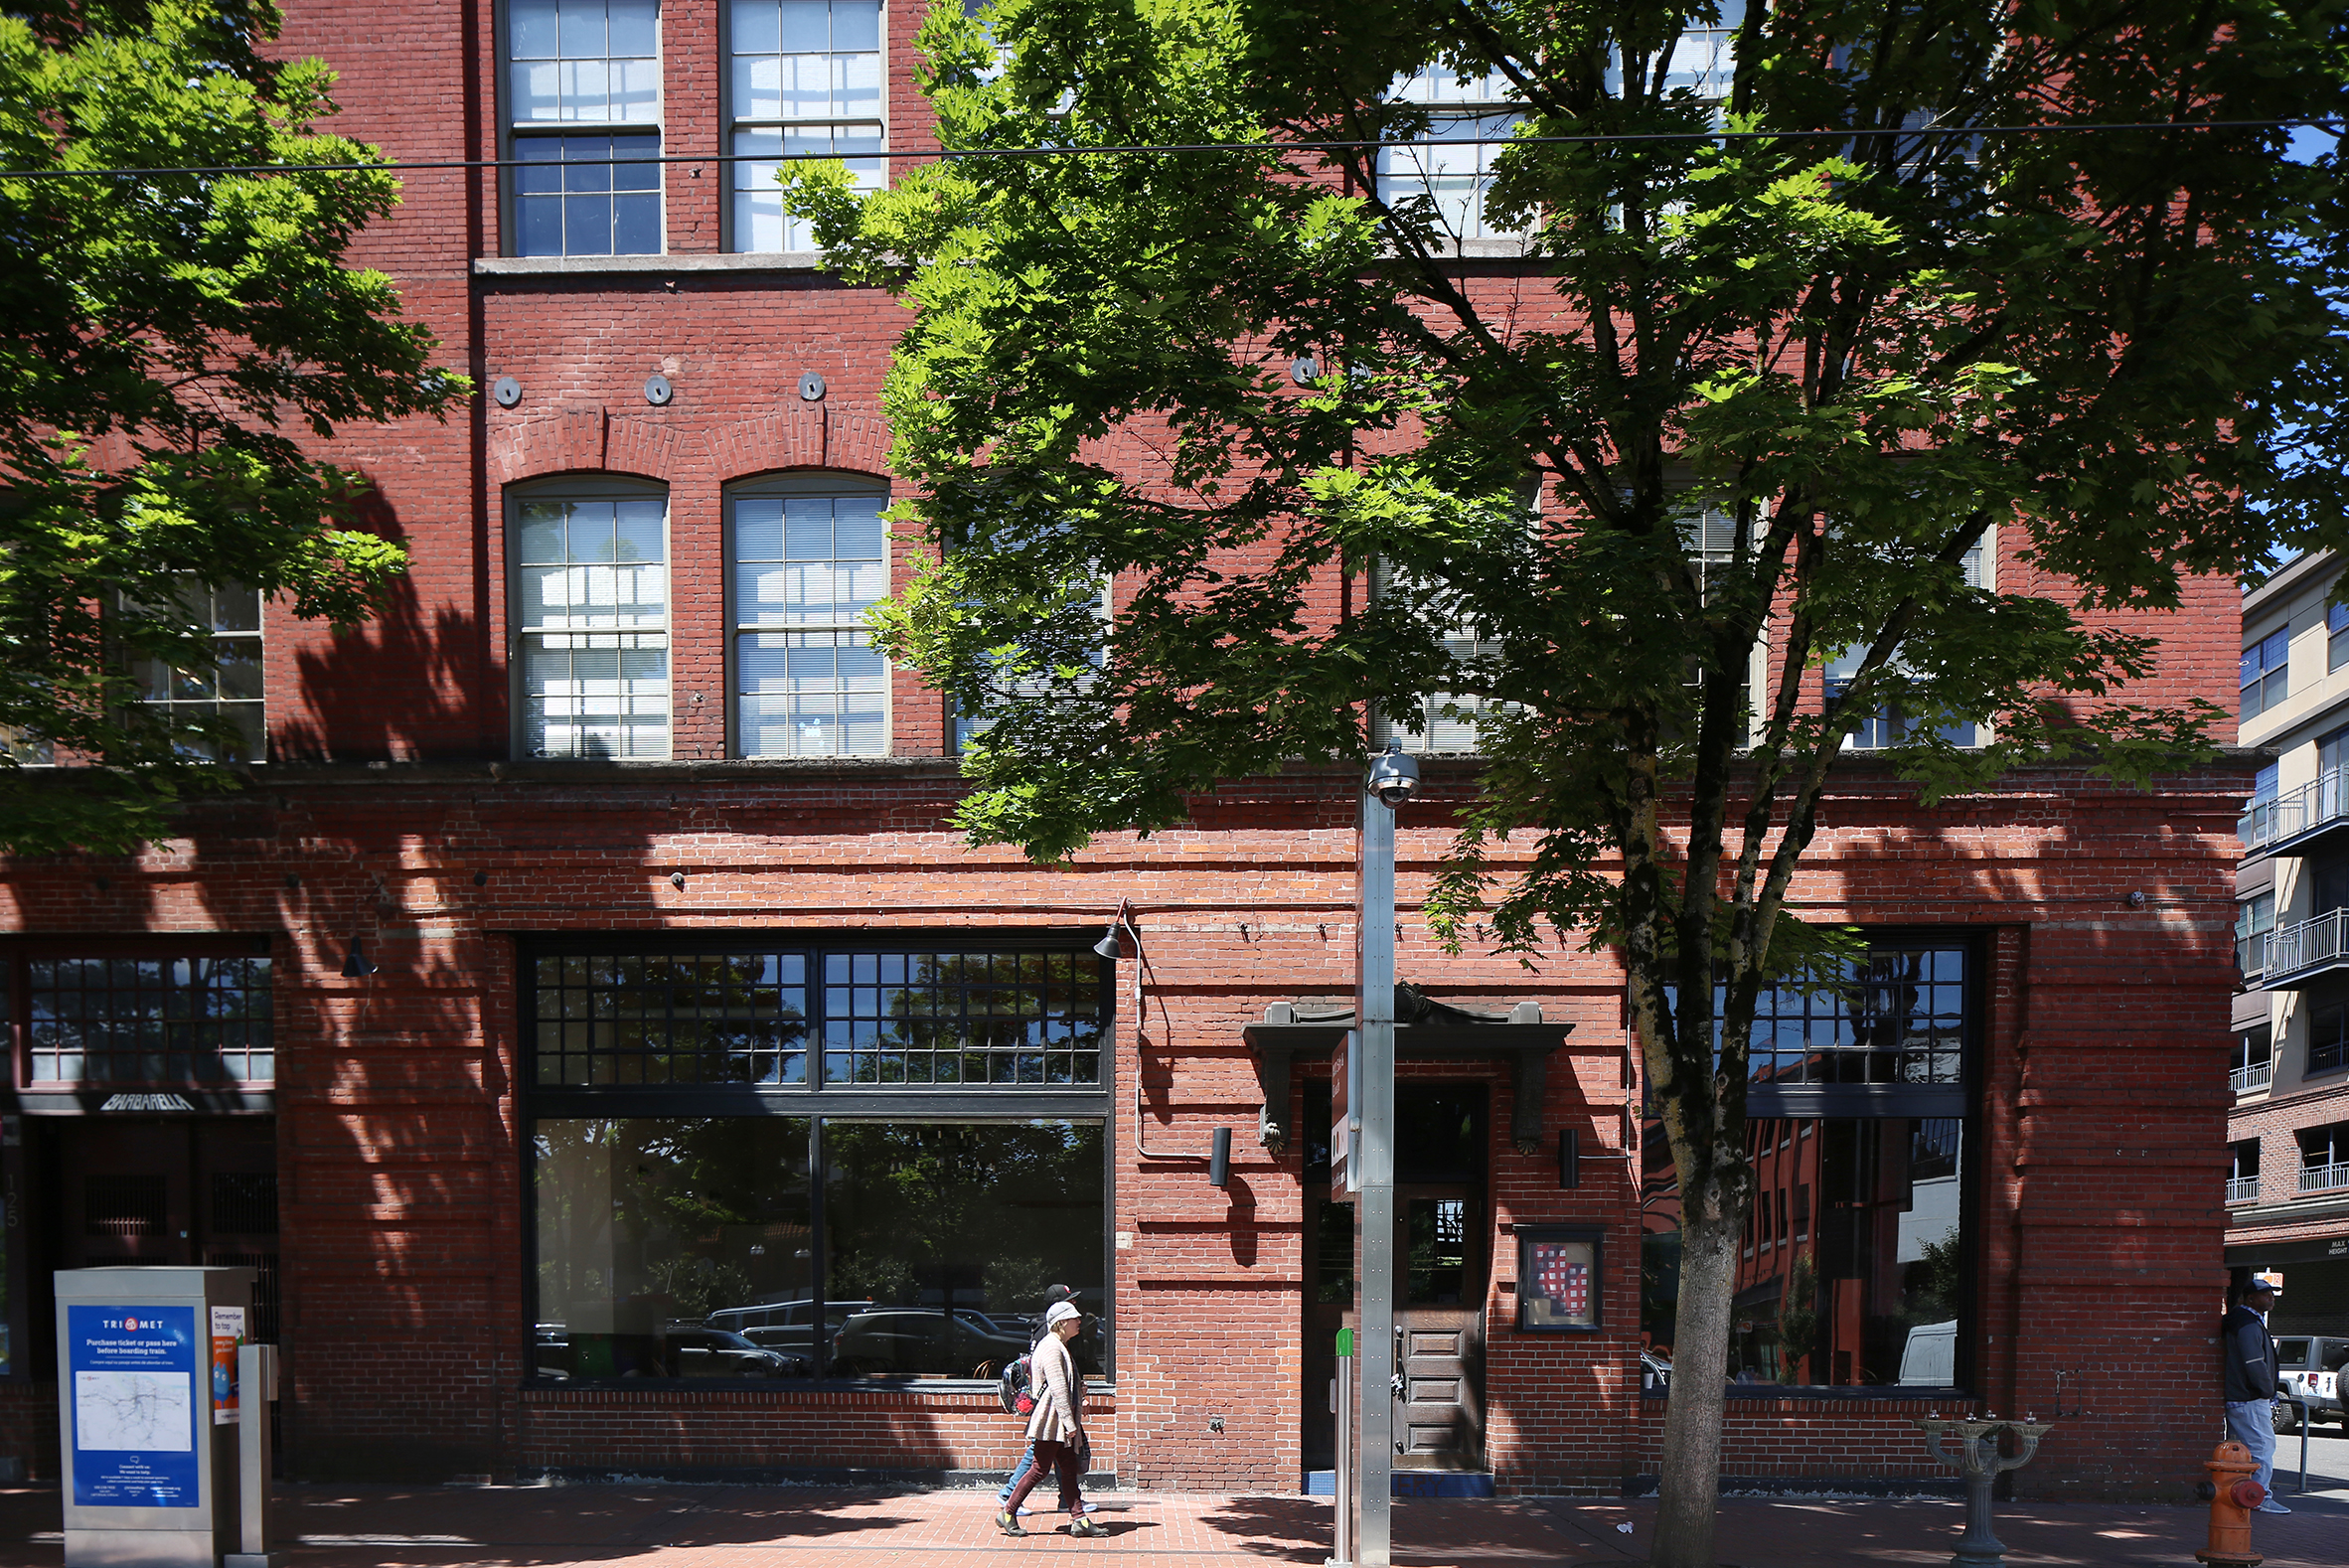 Brick Facade of URM Building in Downtown Portland with Pedestrians by Metro